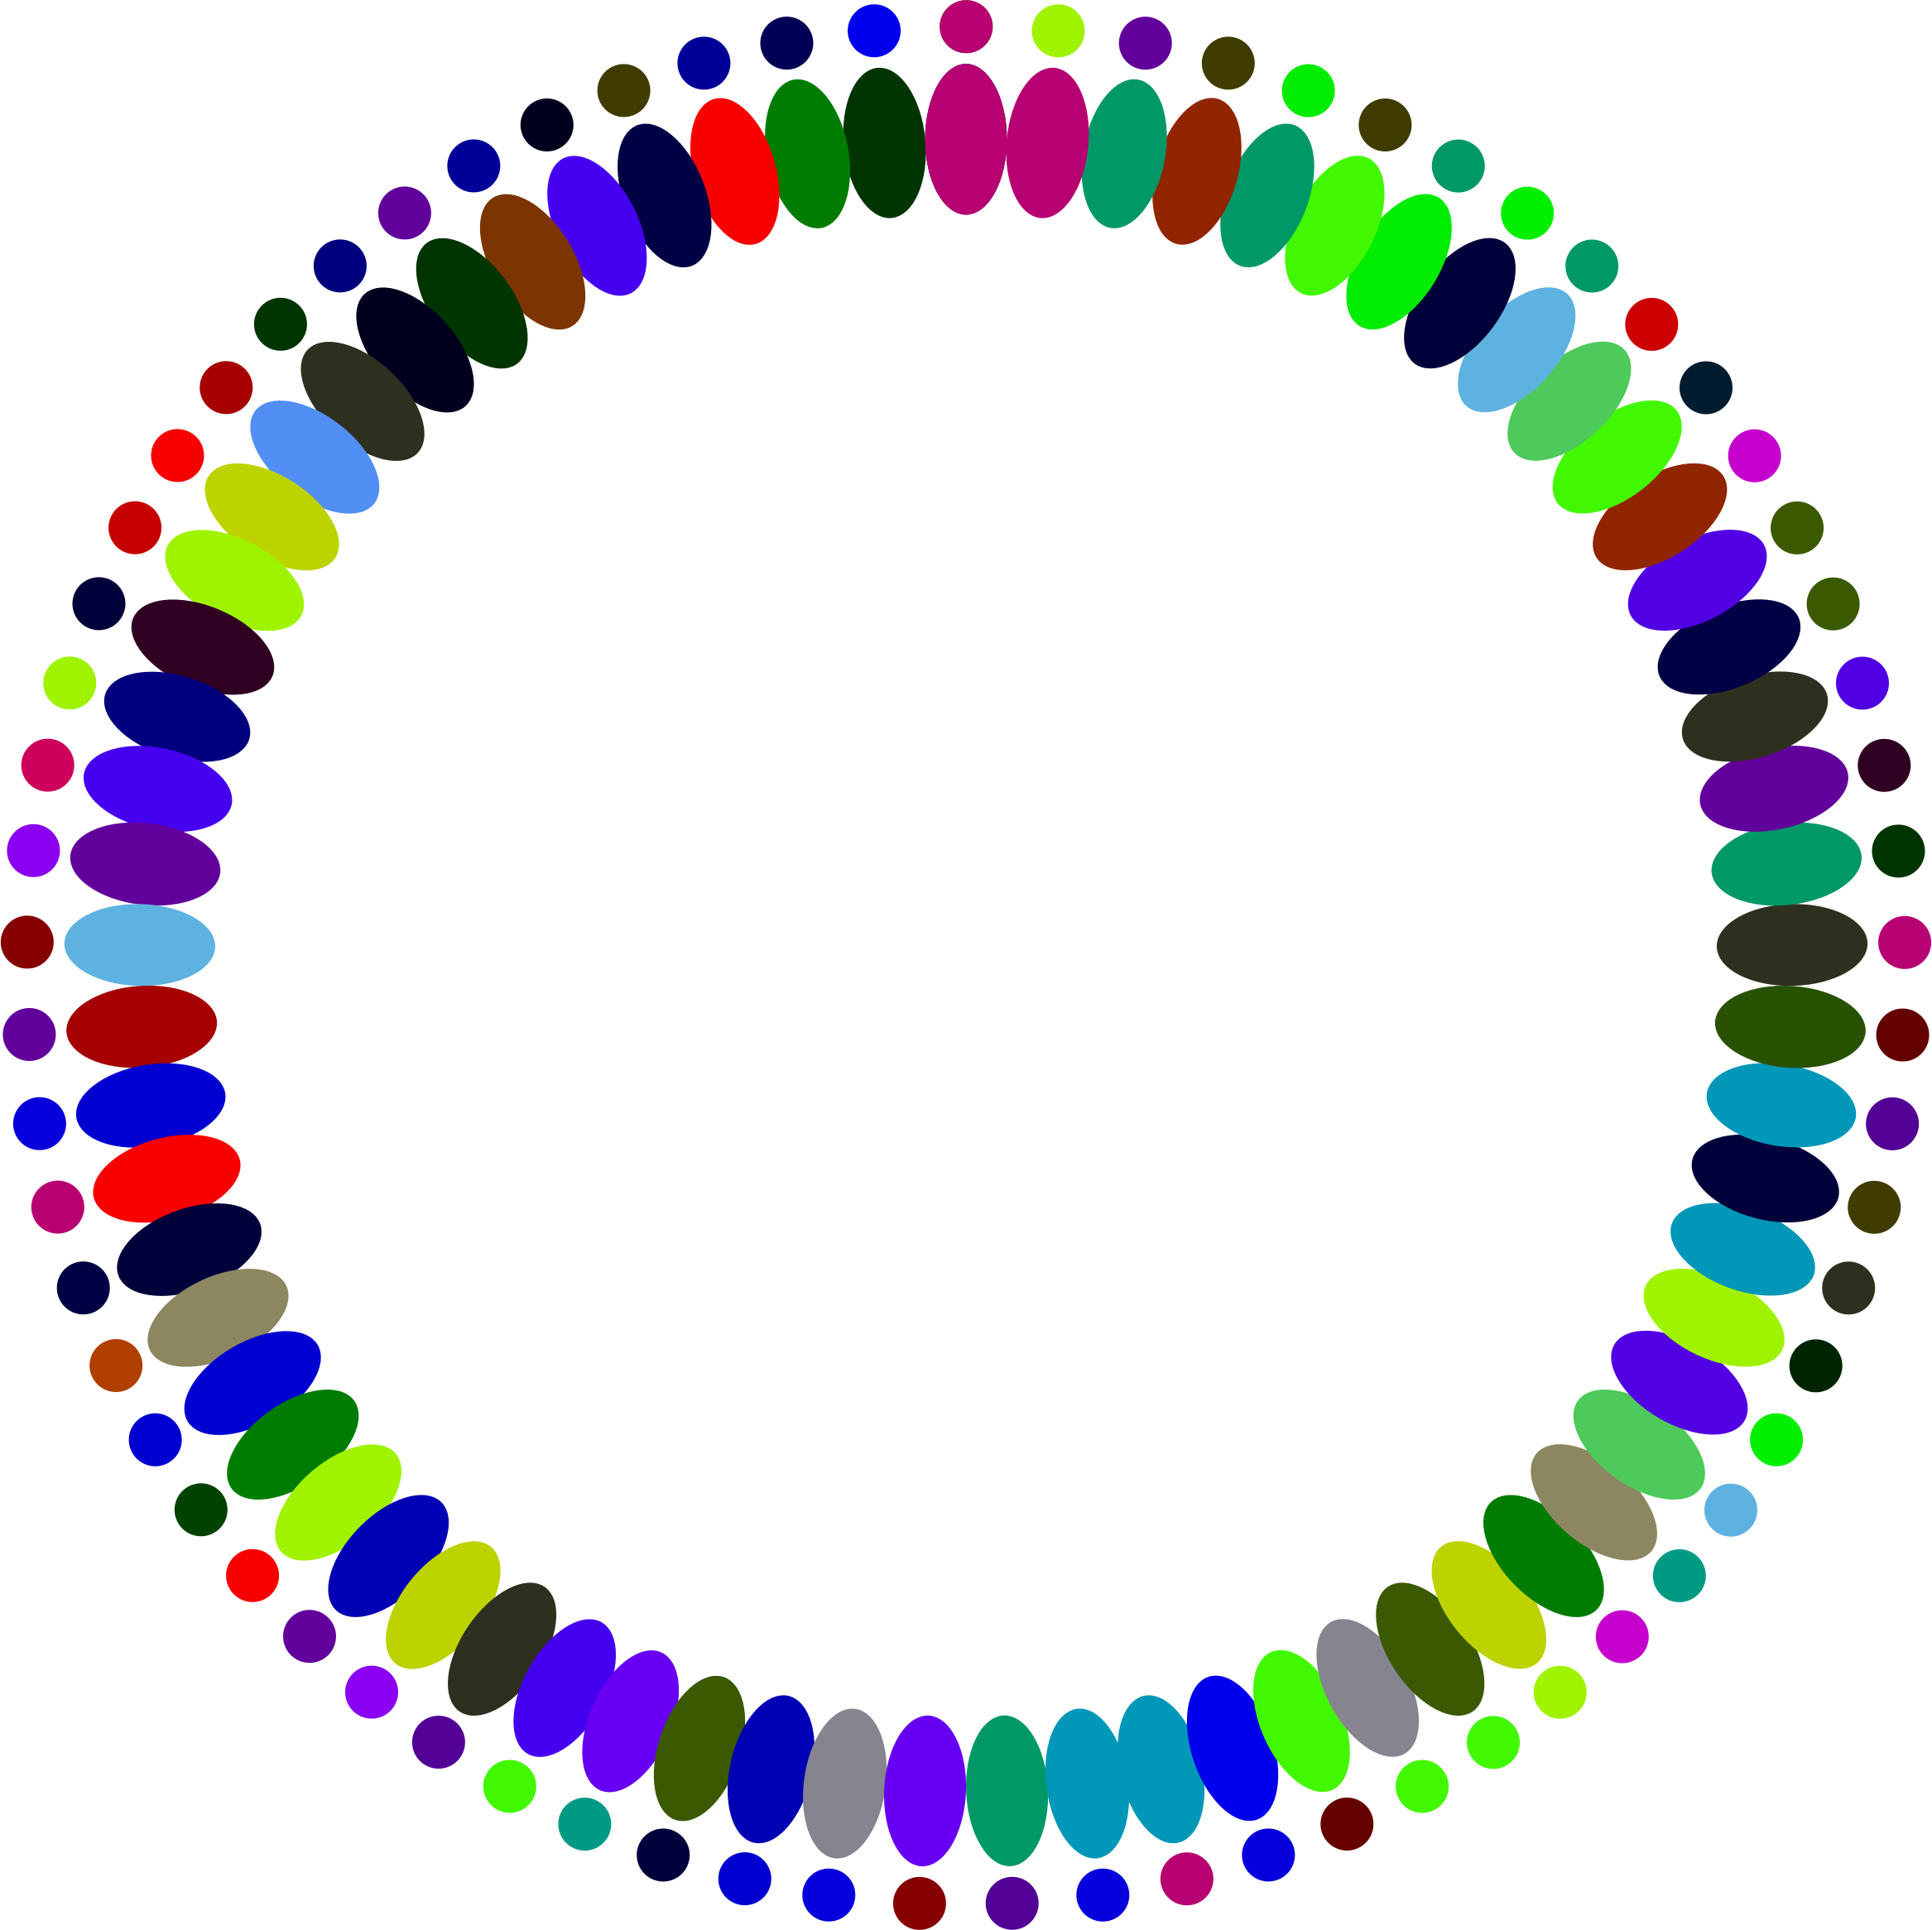 Circle clipart abstract. People big image png